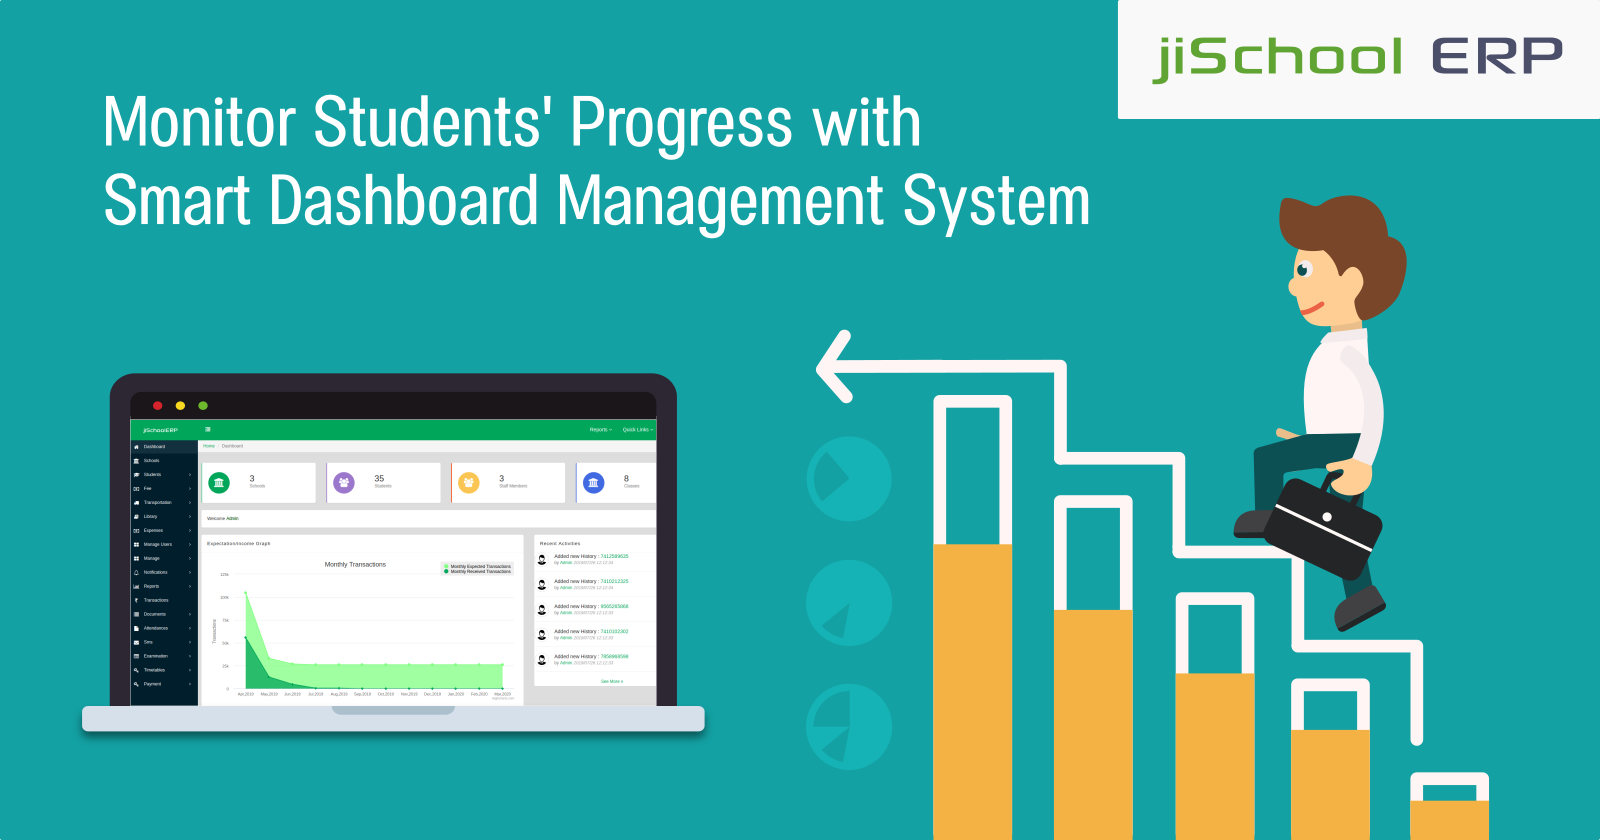 Monitor Students' Progress with Smart Dashboard Management System